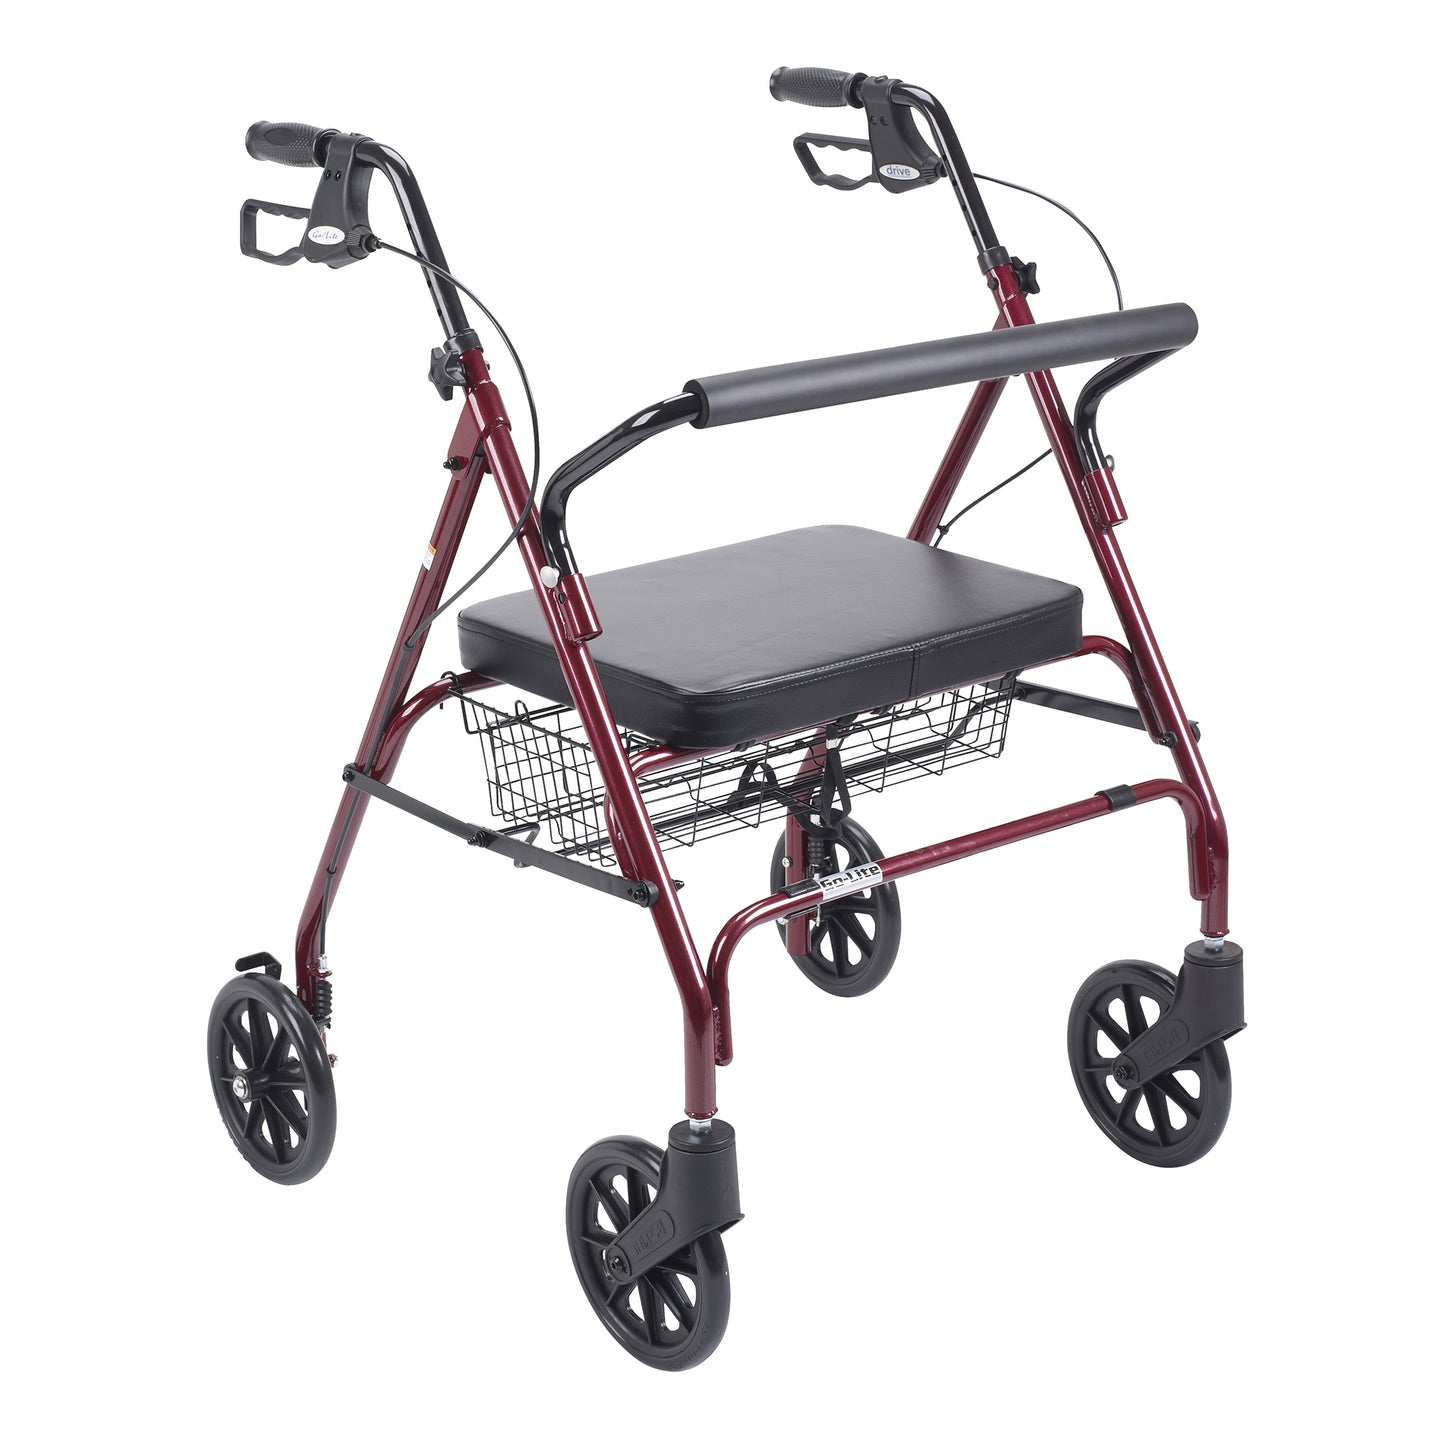 Drive Heavy Duty Bariatric Rollator Rolling Walker with Large Padded Seat- Red